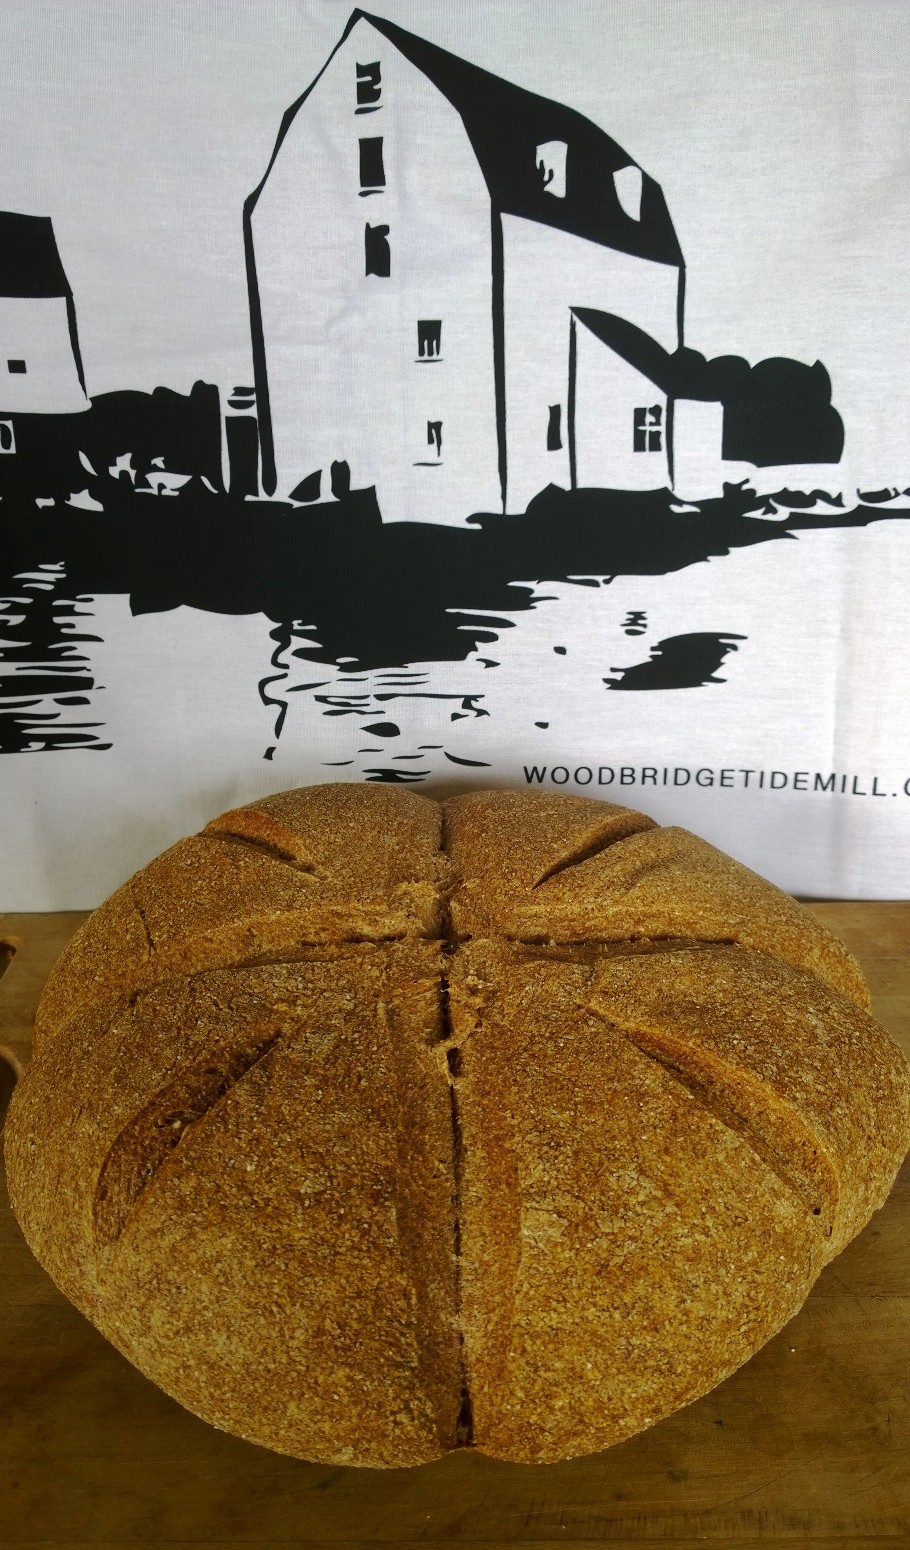 Tidemill black and white canvas shopper and a 1 x 4 SweetDough loaf